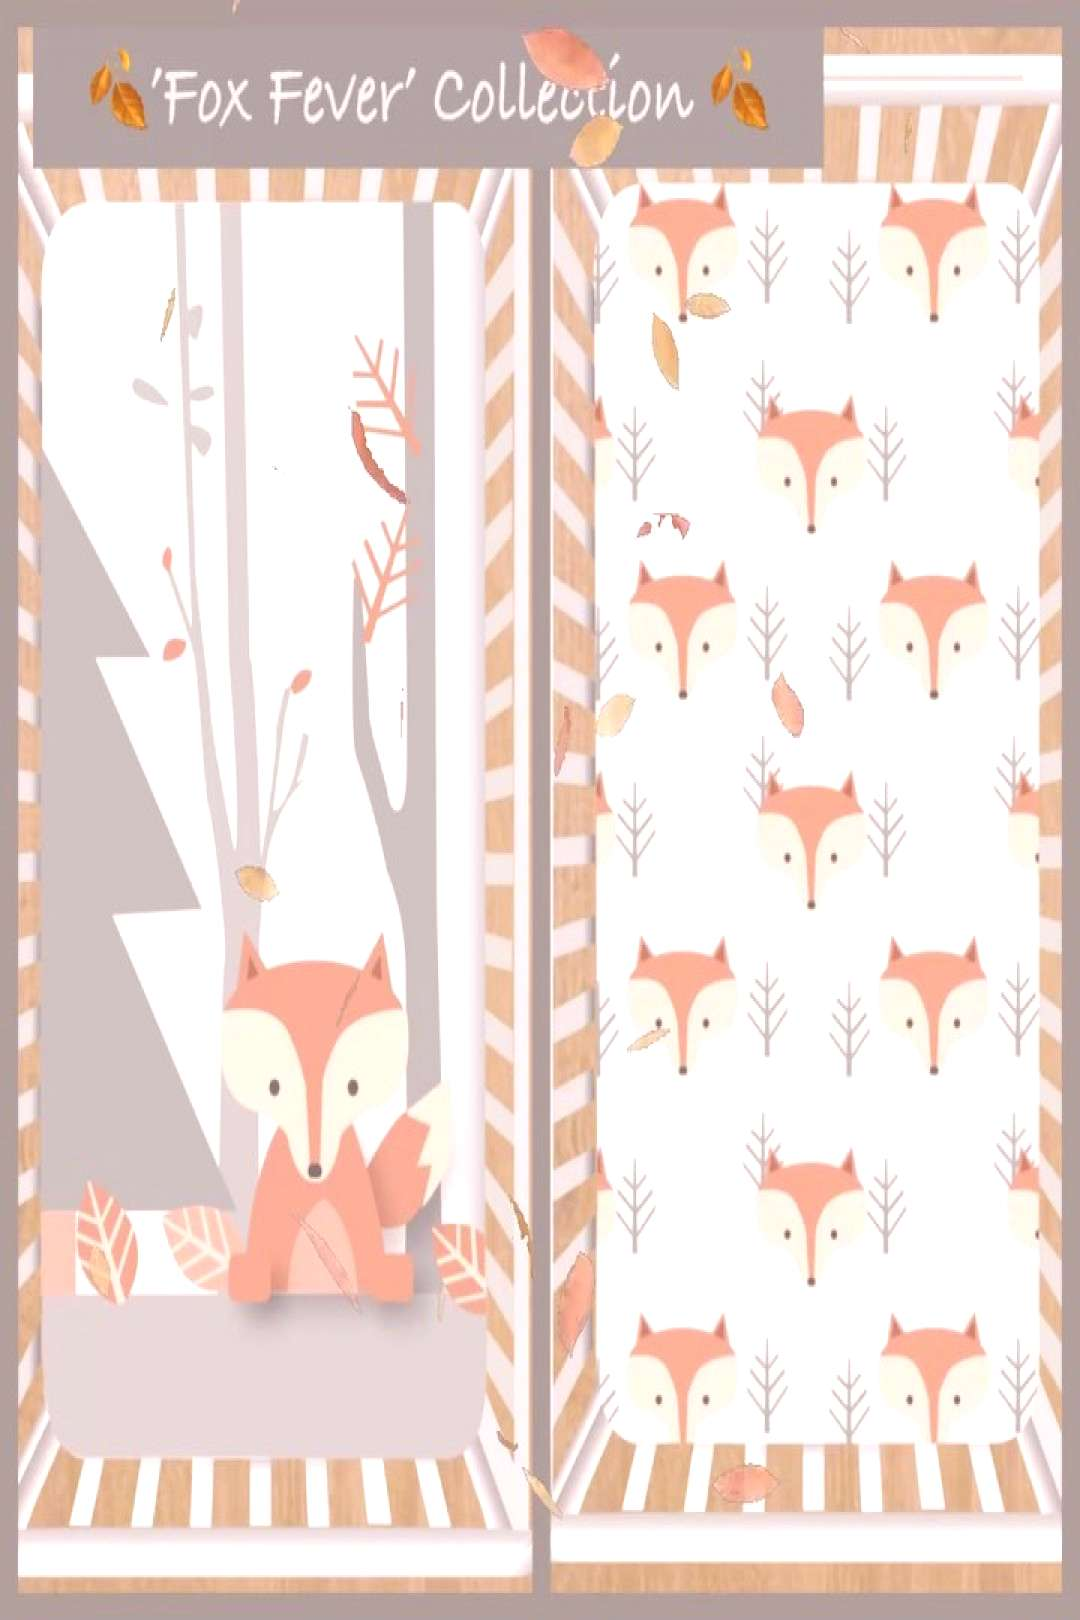 We are celebrating the new addition to our Fox Fever Collection